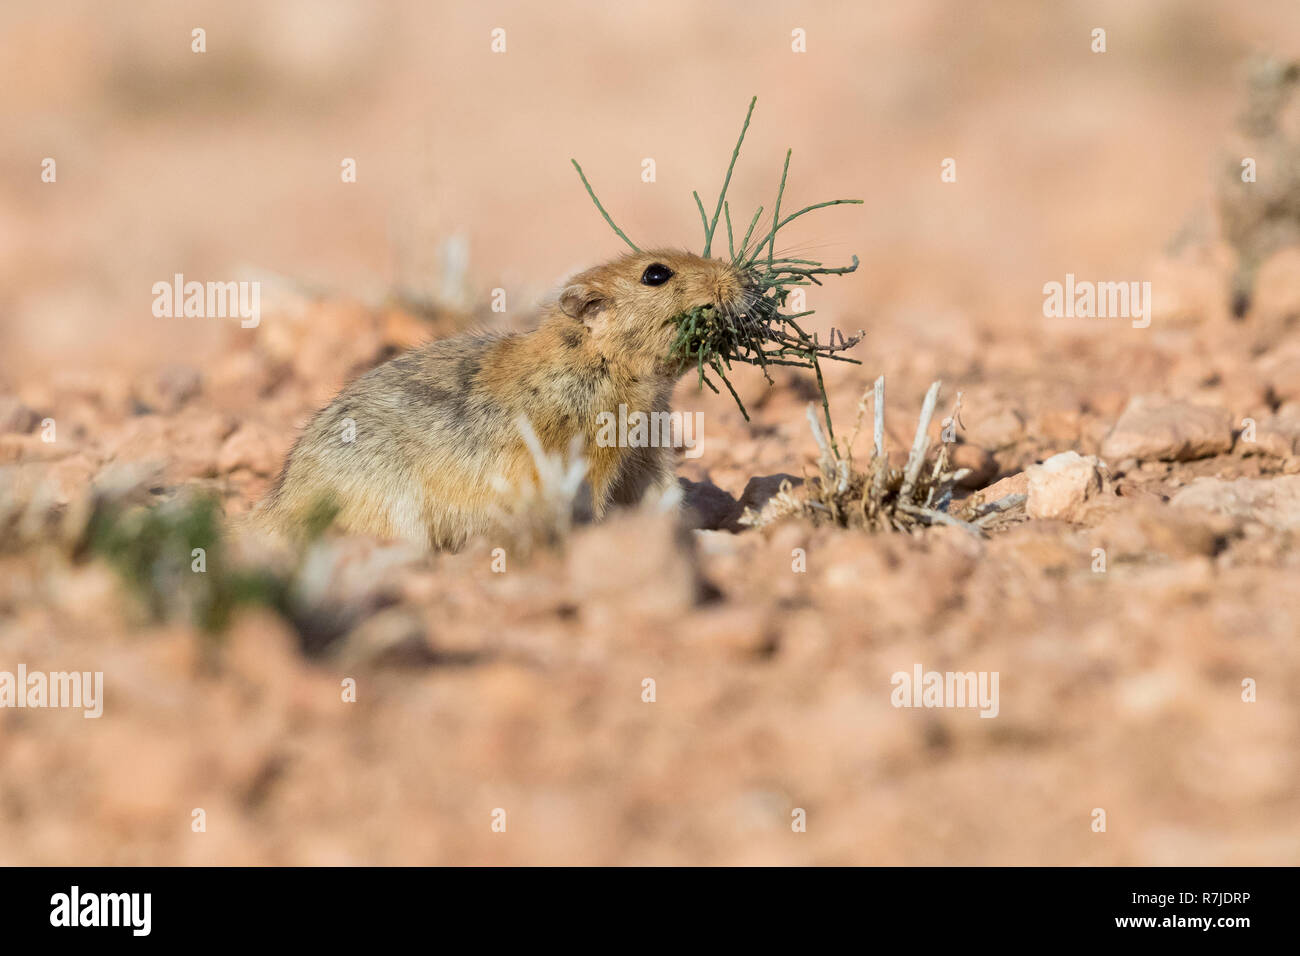 Fat Sand Rat (Psammomys obesus), adult carrying grass in its mouth - Stock Image